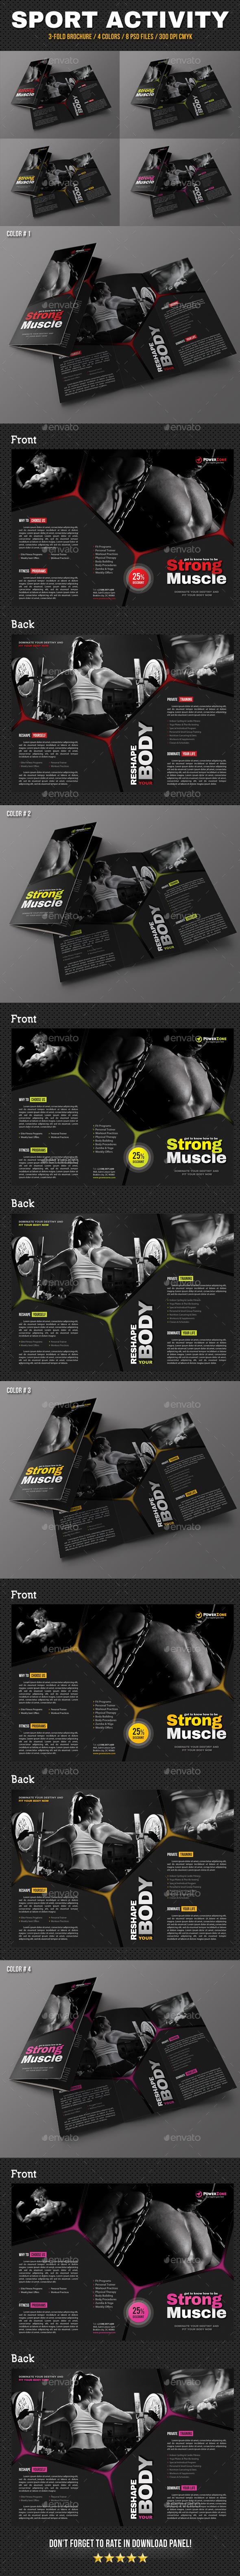 Sport Activity 3-Fold Brochure V05 - Brochures Print Templates